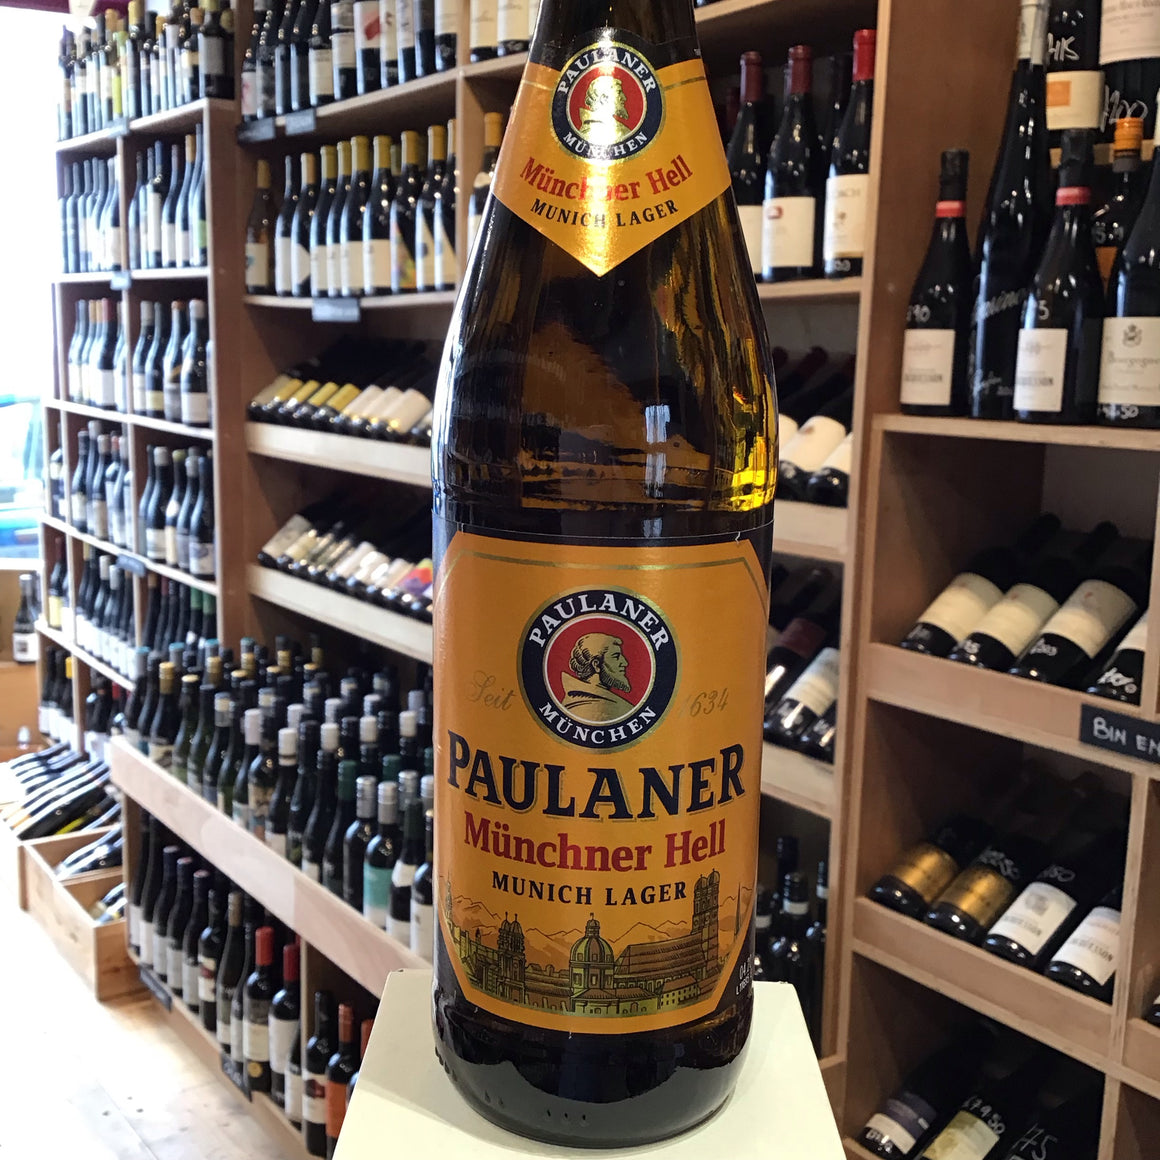 Paulaner Munich Lager 50cl 4.9% Abv - Butlers Wine Cellar Brighton